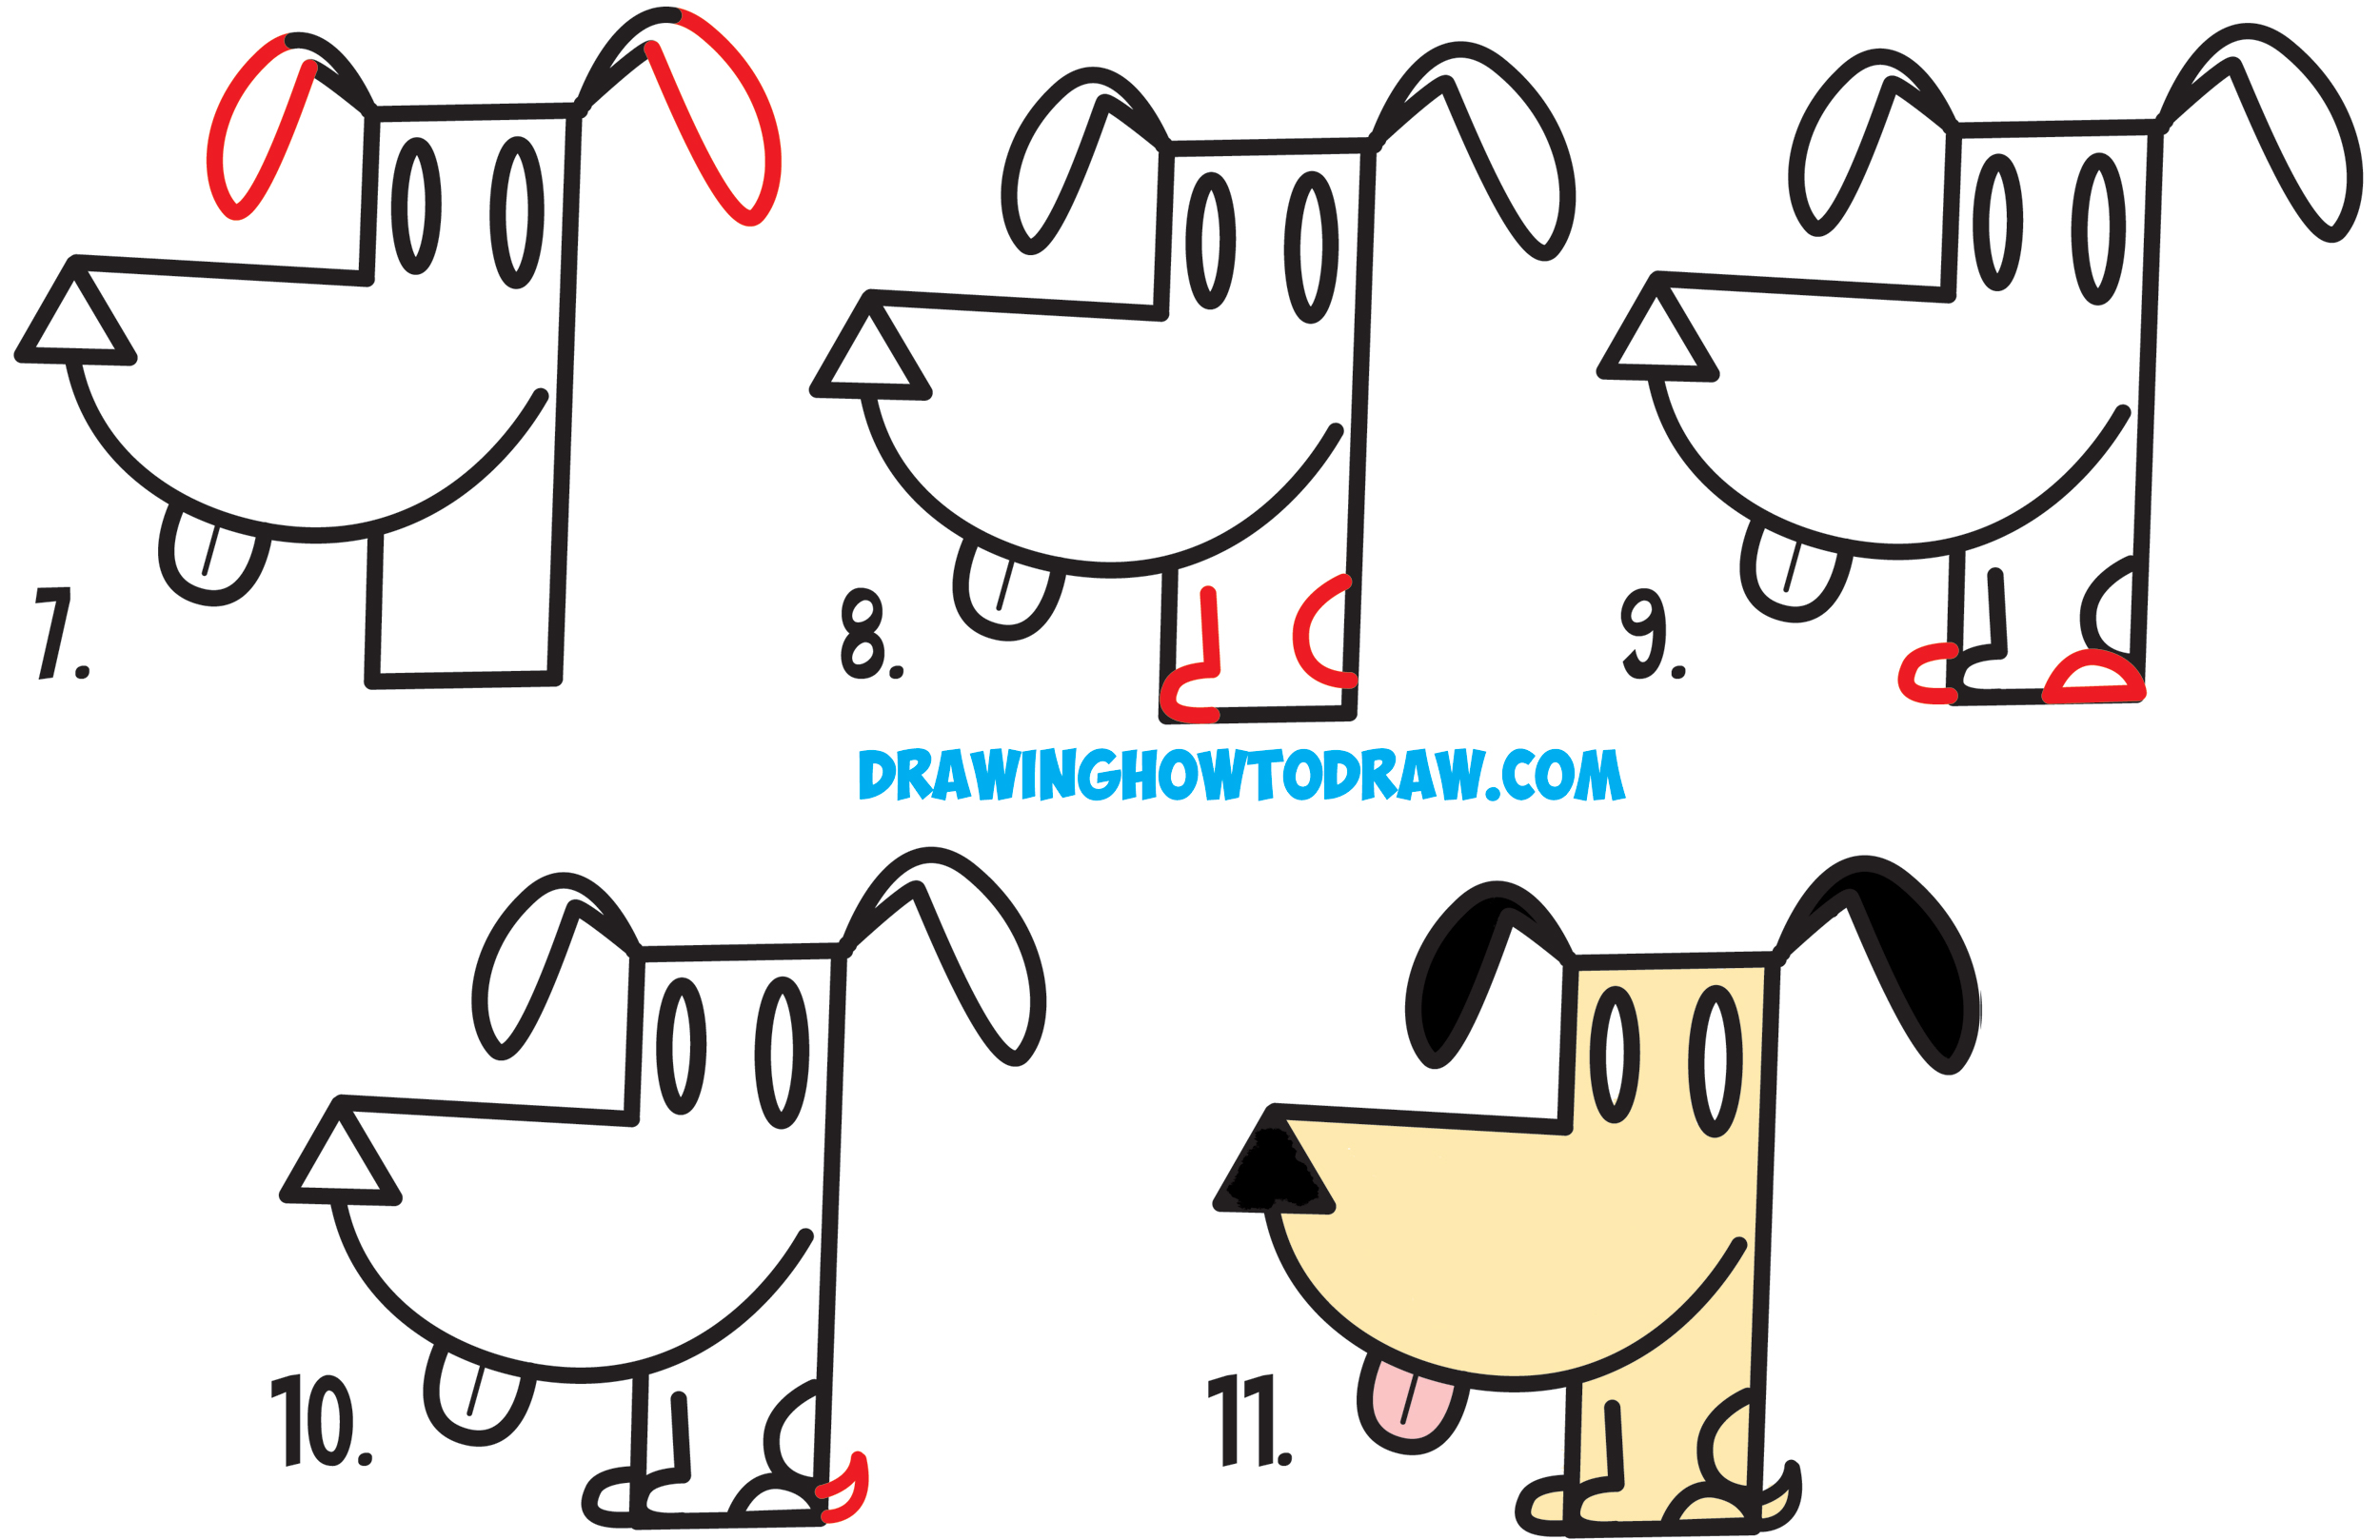 Learn How to Draw a Cartoon Dog from an Arrow Shape - Simple Steps Drawing Lesson for Kids